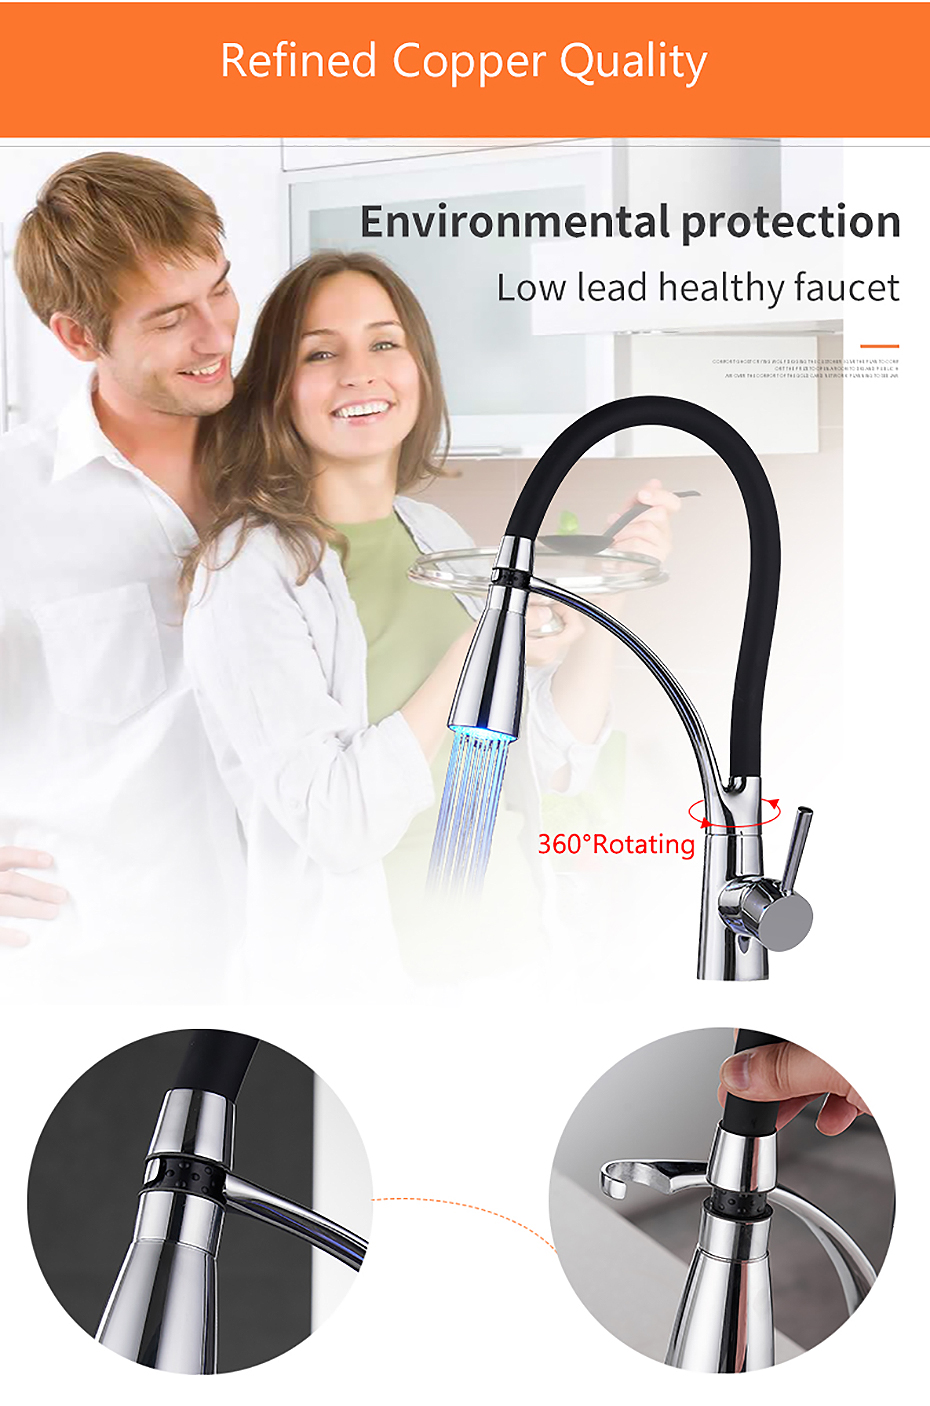 He53df235430642d0841378d484f1fc34E Kitchen Faucets with Rubber Design Chrome Mixer Faucet for LED Kitchen Single Handle Pull Down Deck Mounted Crane for Sinks 7661